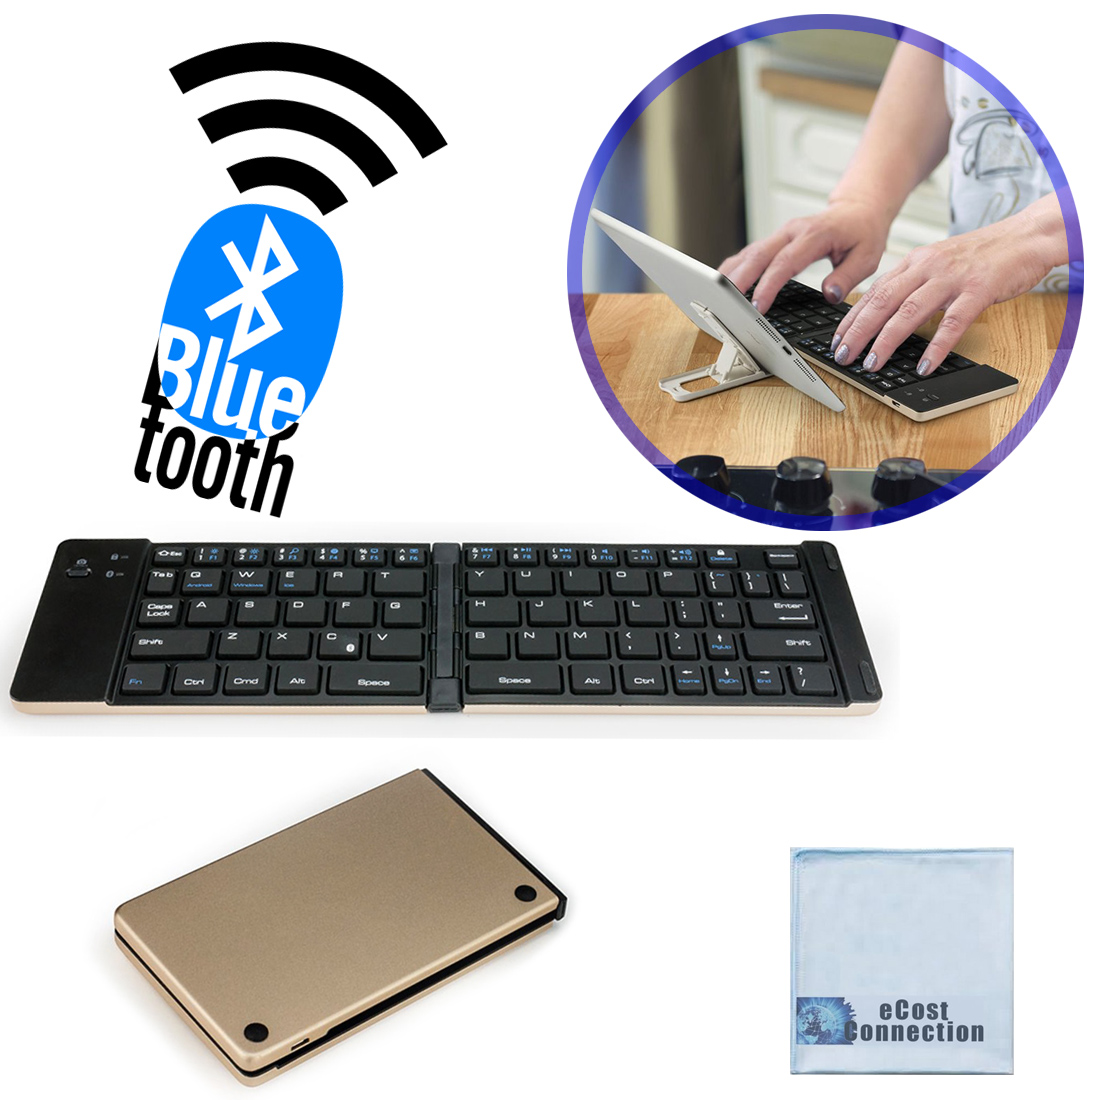 Foldable Bluetooth Keyboard for Computers, Laptops, Tablets, Smartphones, iPhones, Samsung, Android, iPads (Gold) + eCostConnection Microfiber Cloth